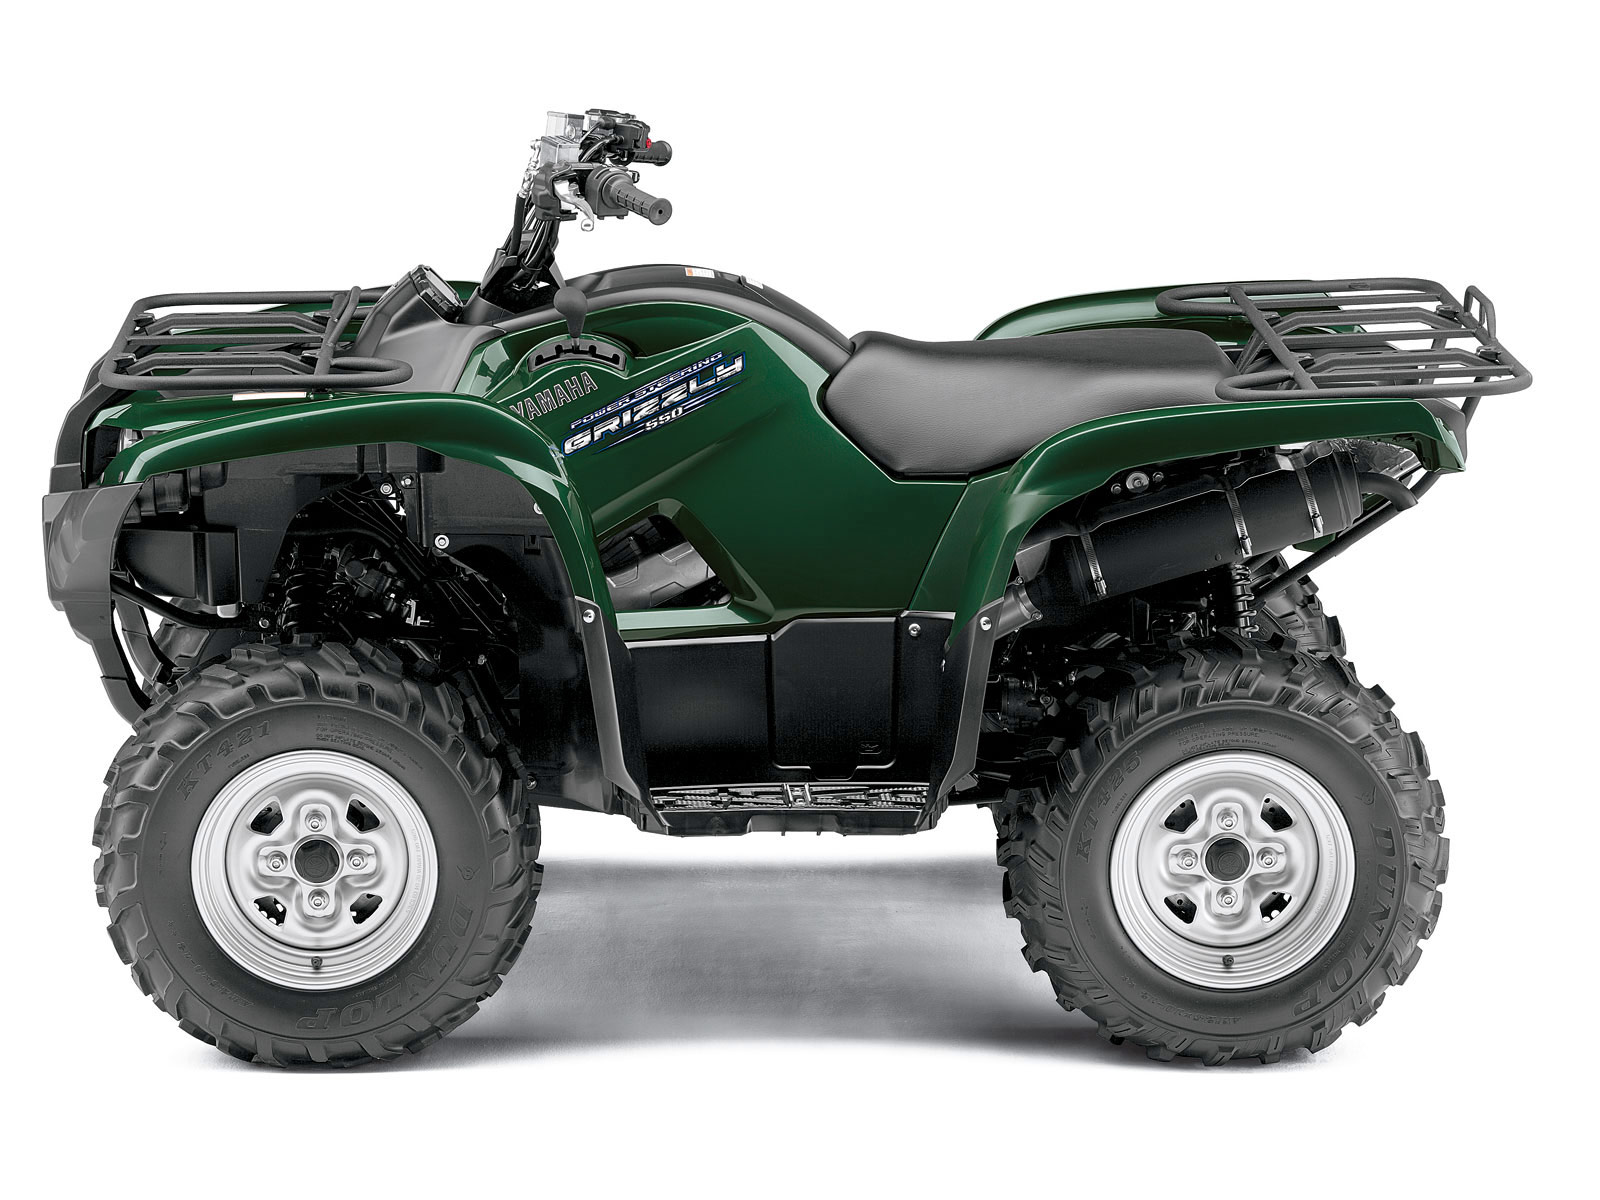 2011 yamaha grizzly 550 fi 4x4 eps atv insurance information for Yamaha grizzly atv